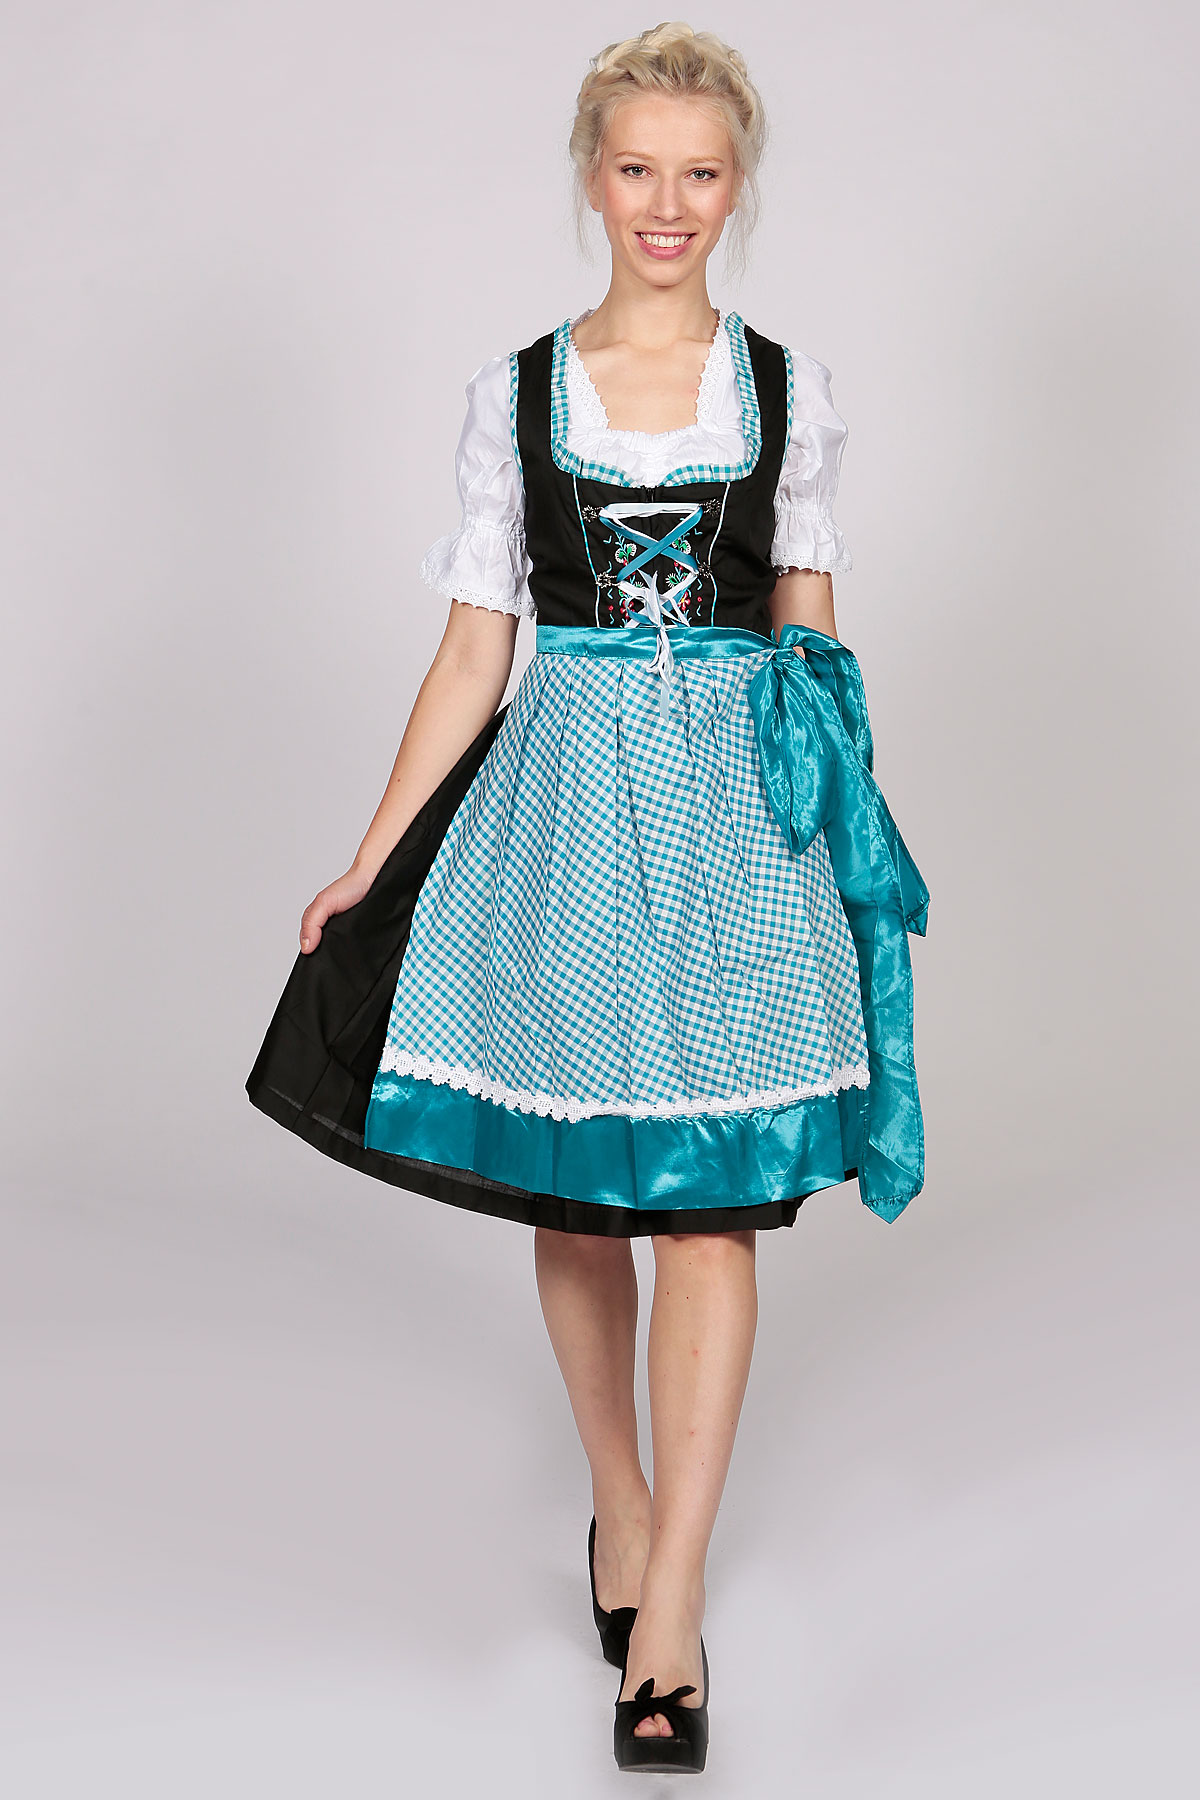 authentic lederhosen and dirndl dresses lederhosen store